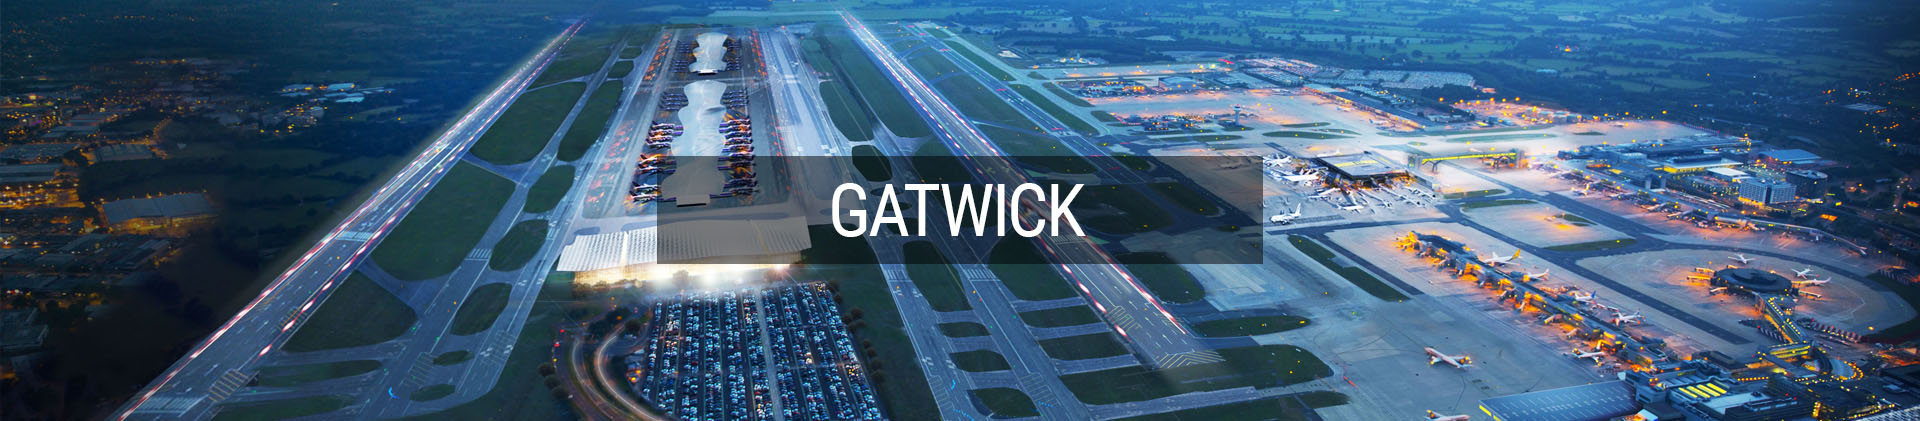 Gatwick Airport Parking | Cheapest Airport Parking in UK